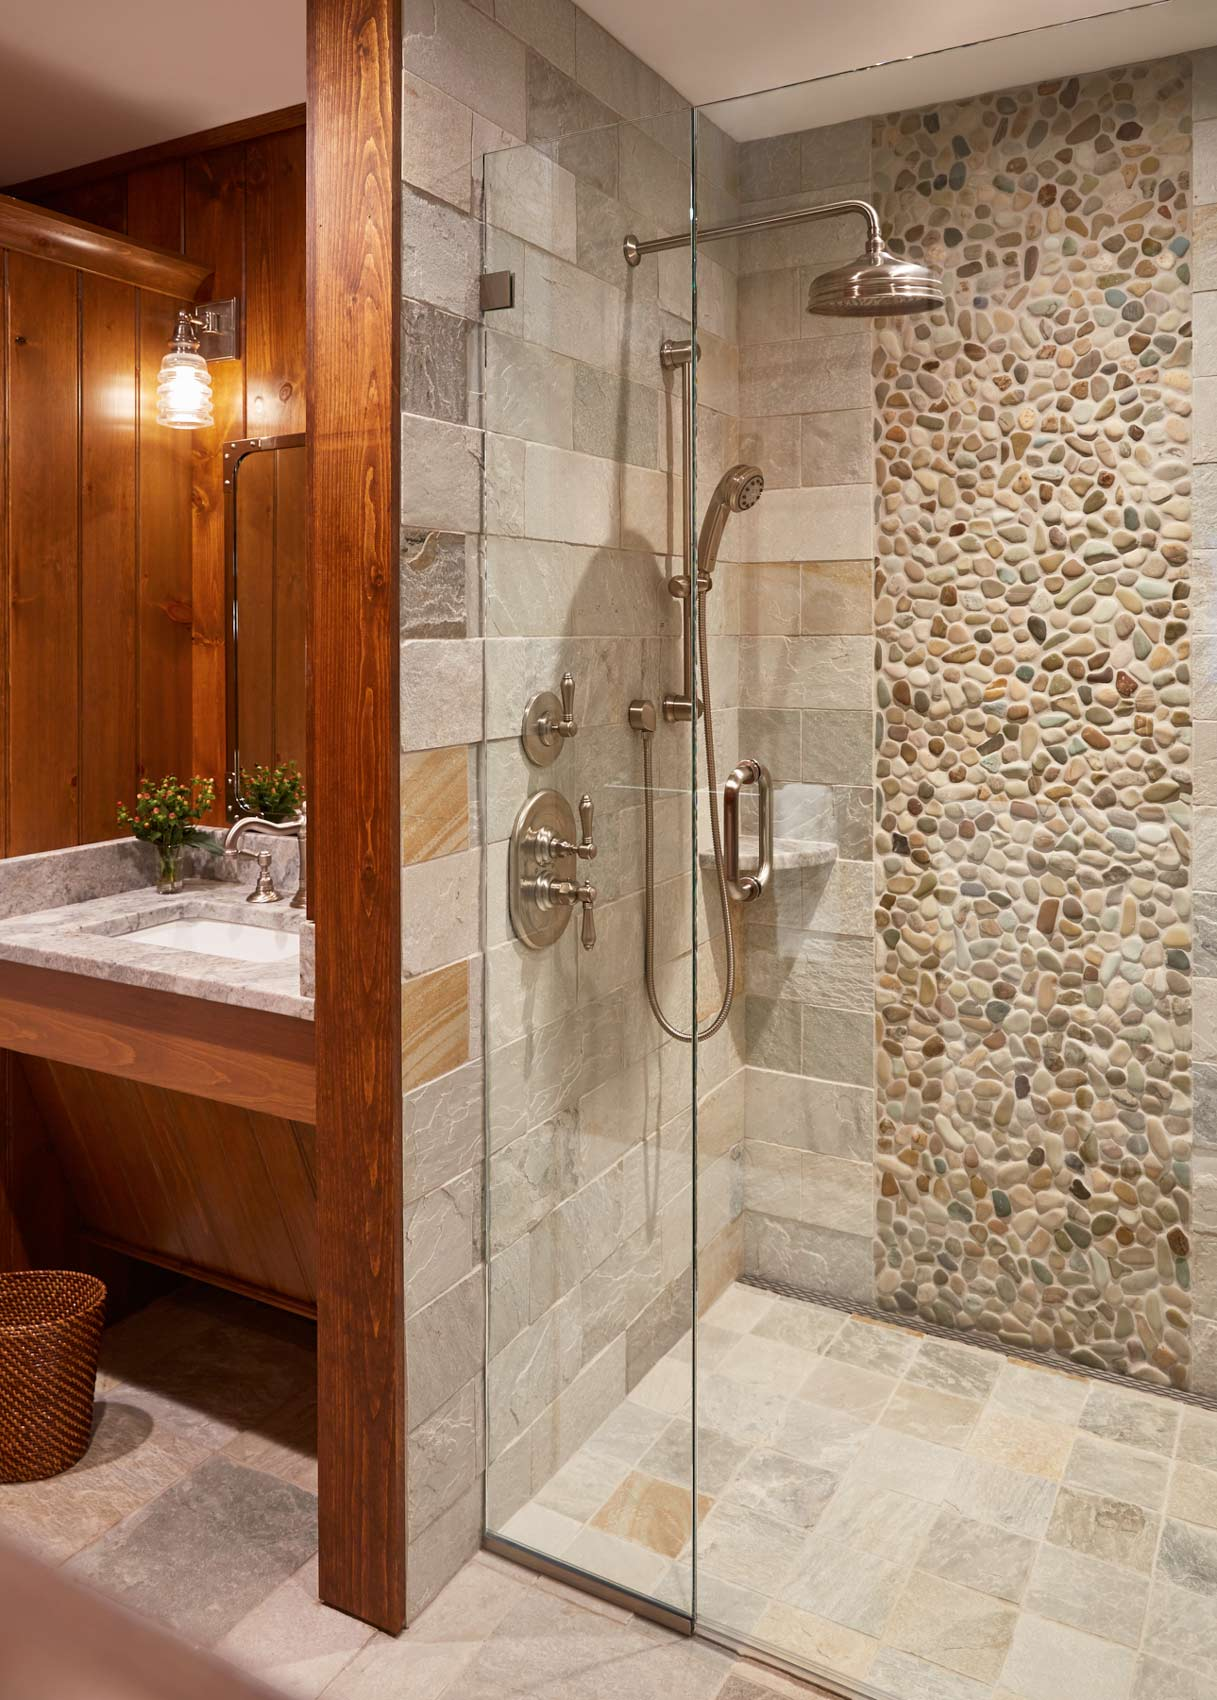 The bathroom features a custom tile shower from Distinctive Tile & Stoneworks, designed by Sarah Welch of Hurlbutt Designs.